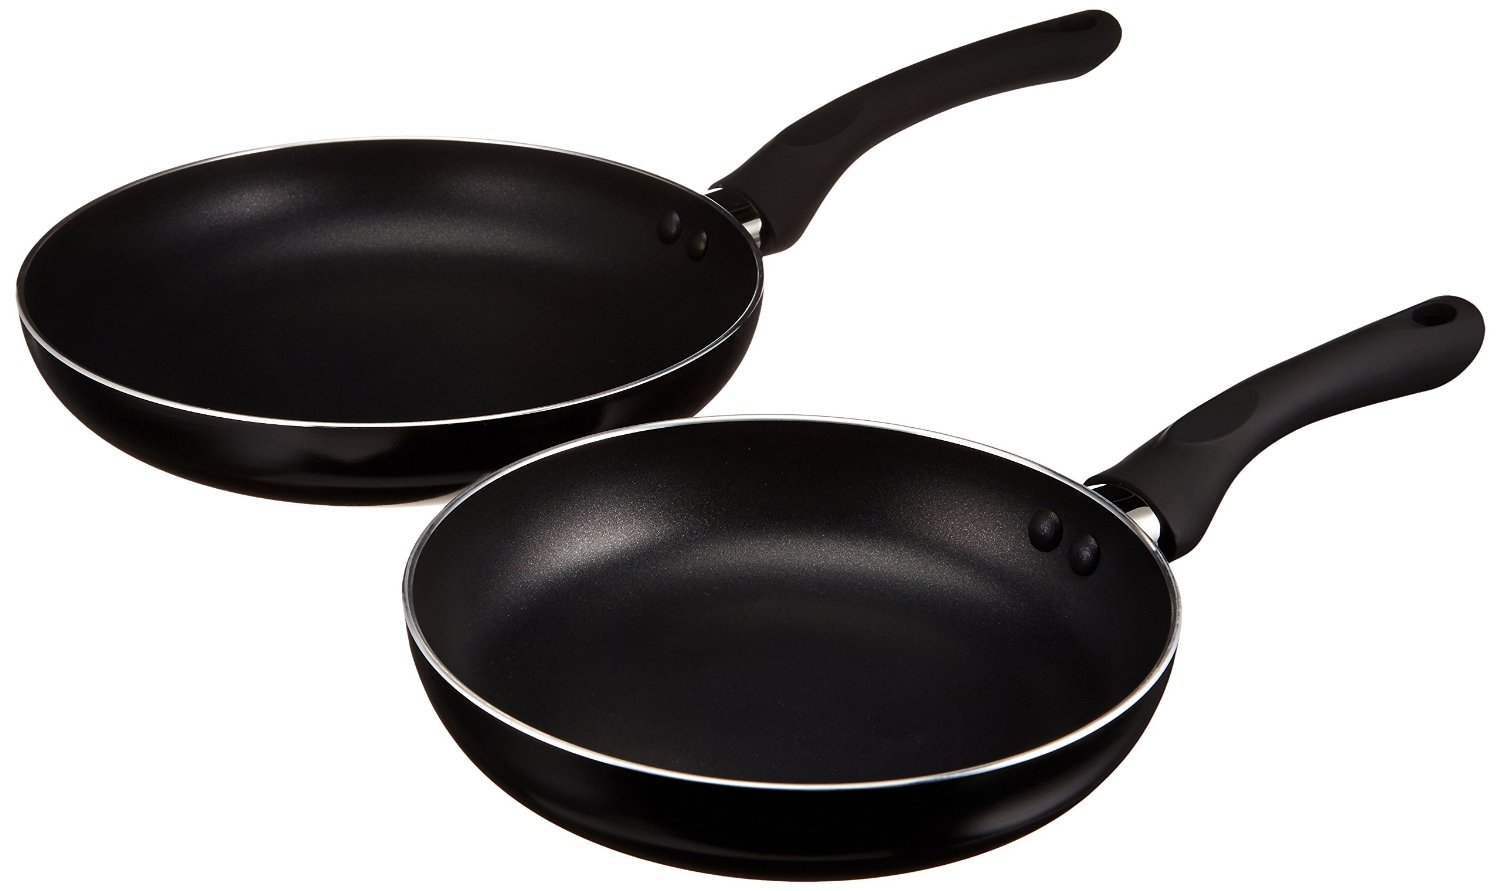 AmazonBasics Nonstick Fry Pan Set